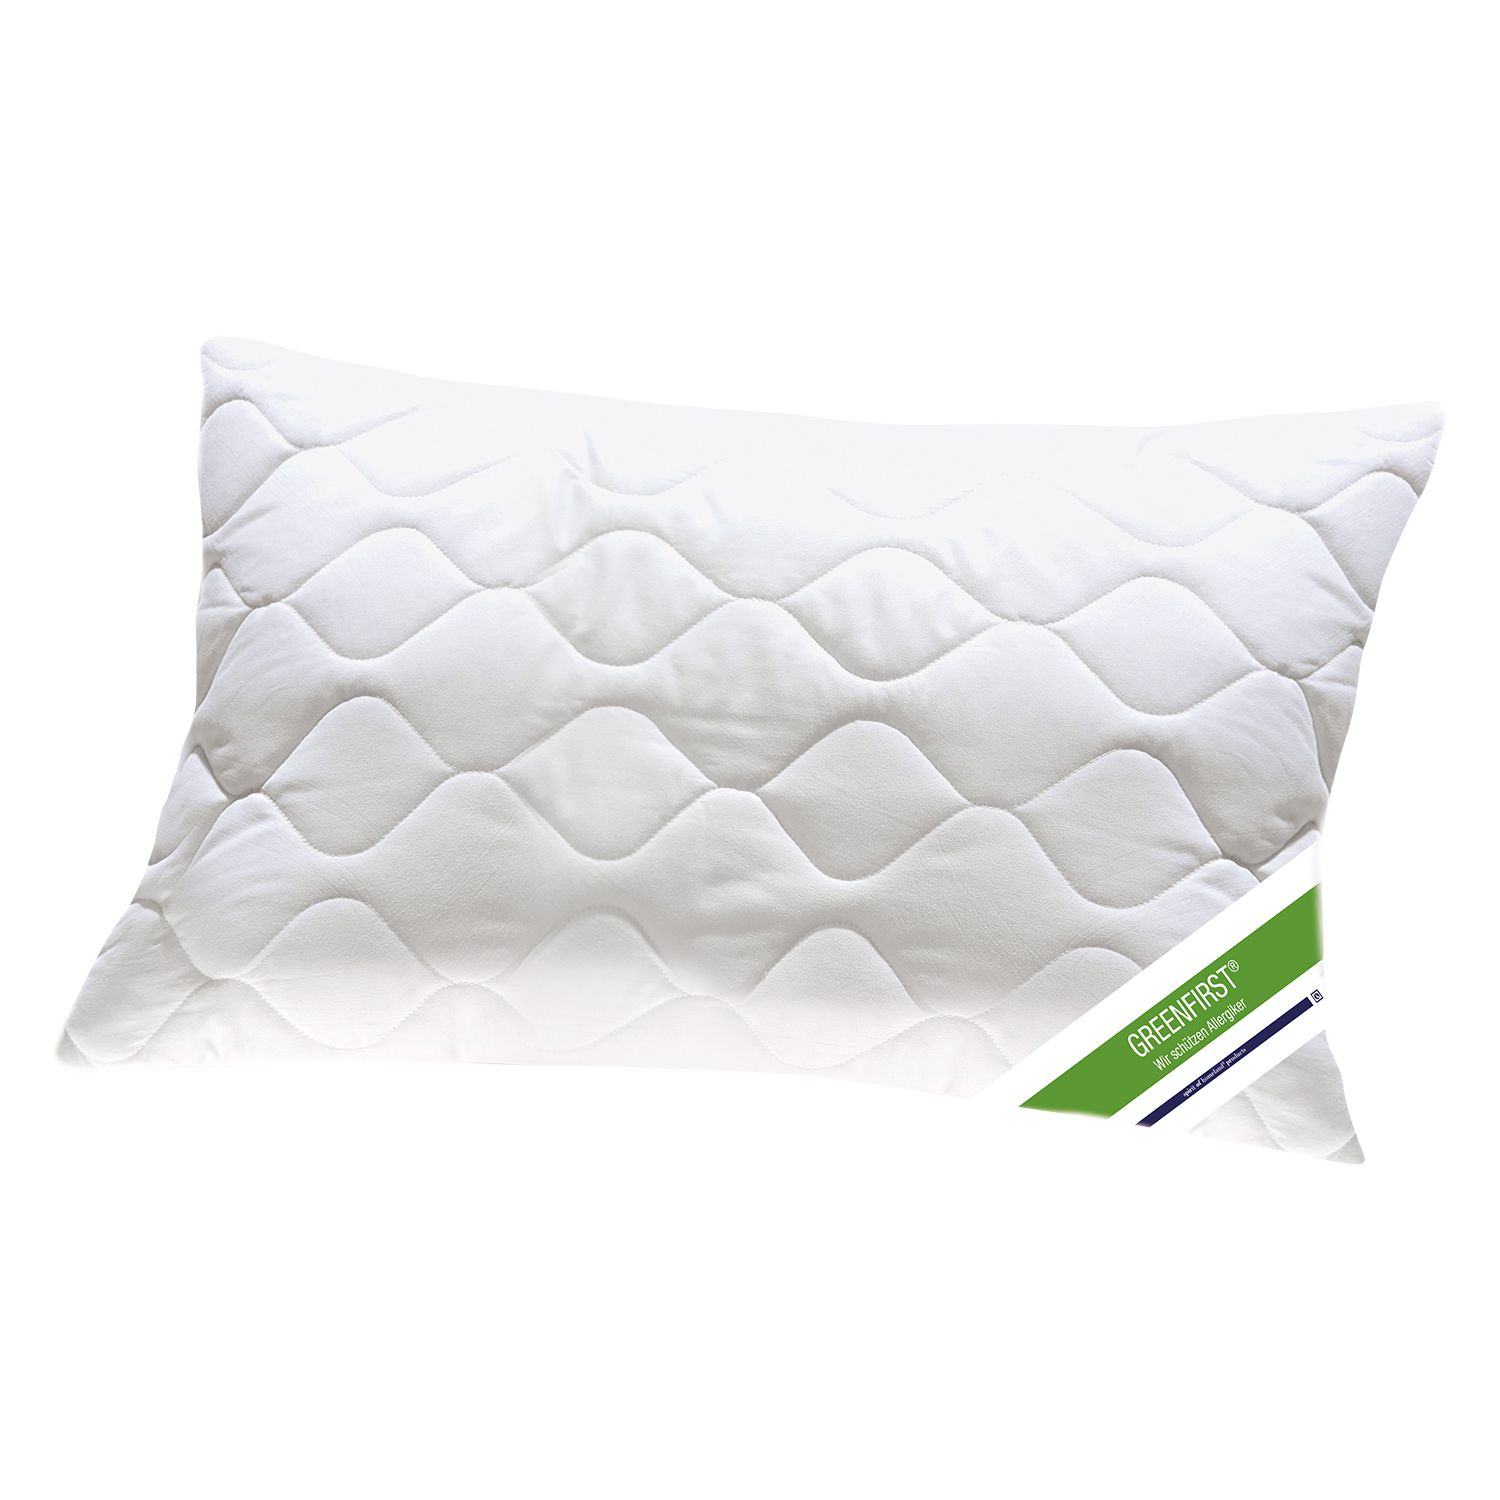 Oreiller Greenfirst - Fibres synthétiques - Blanc - 40 x 80 cm, Greenfirst